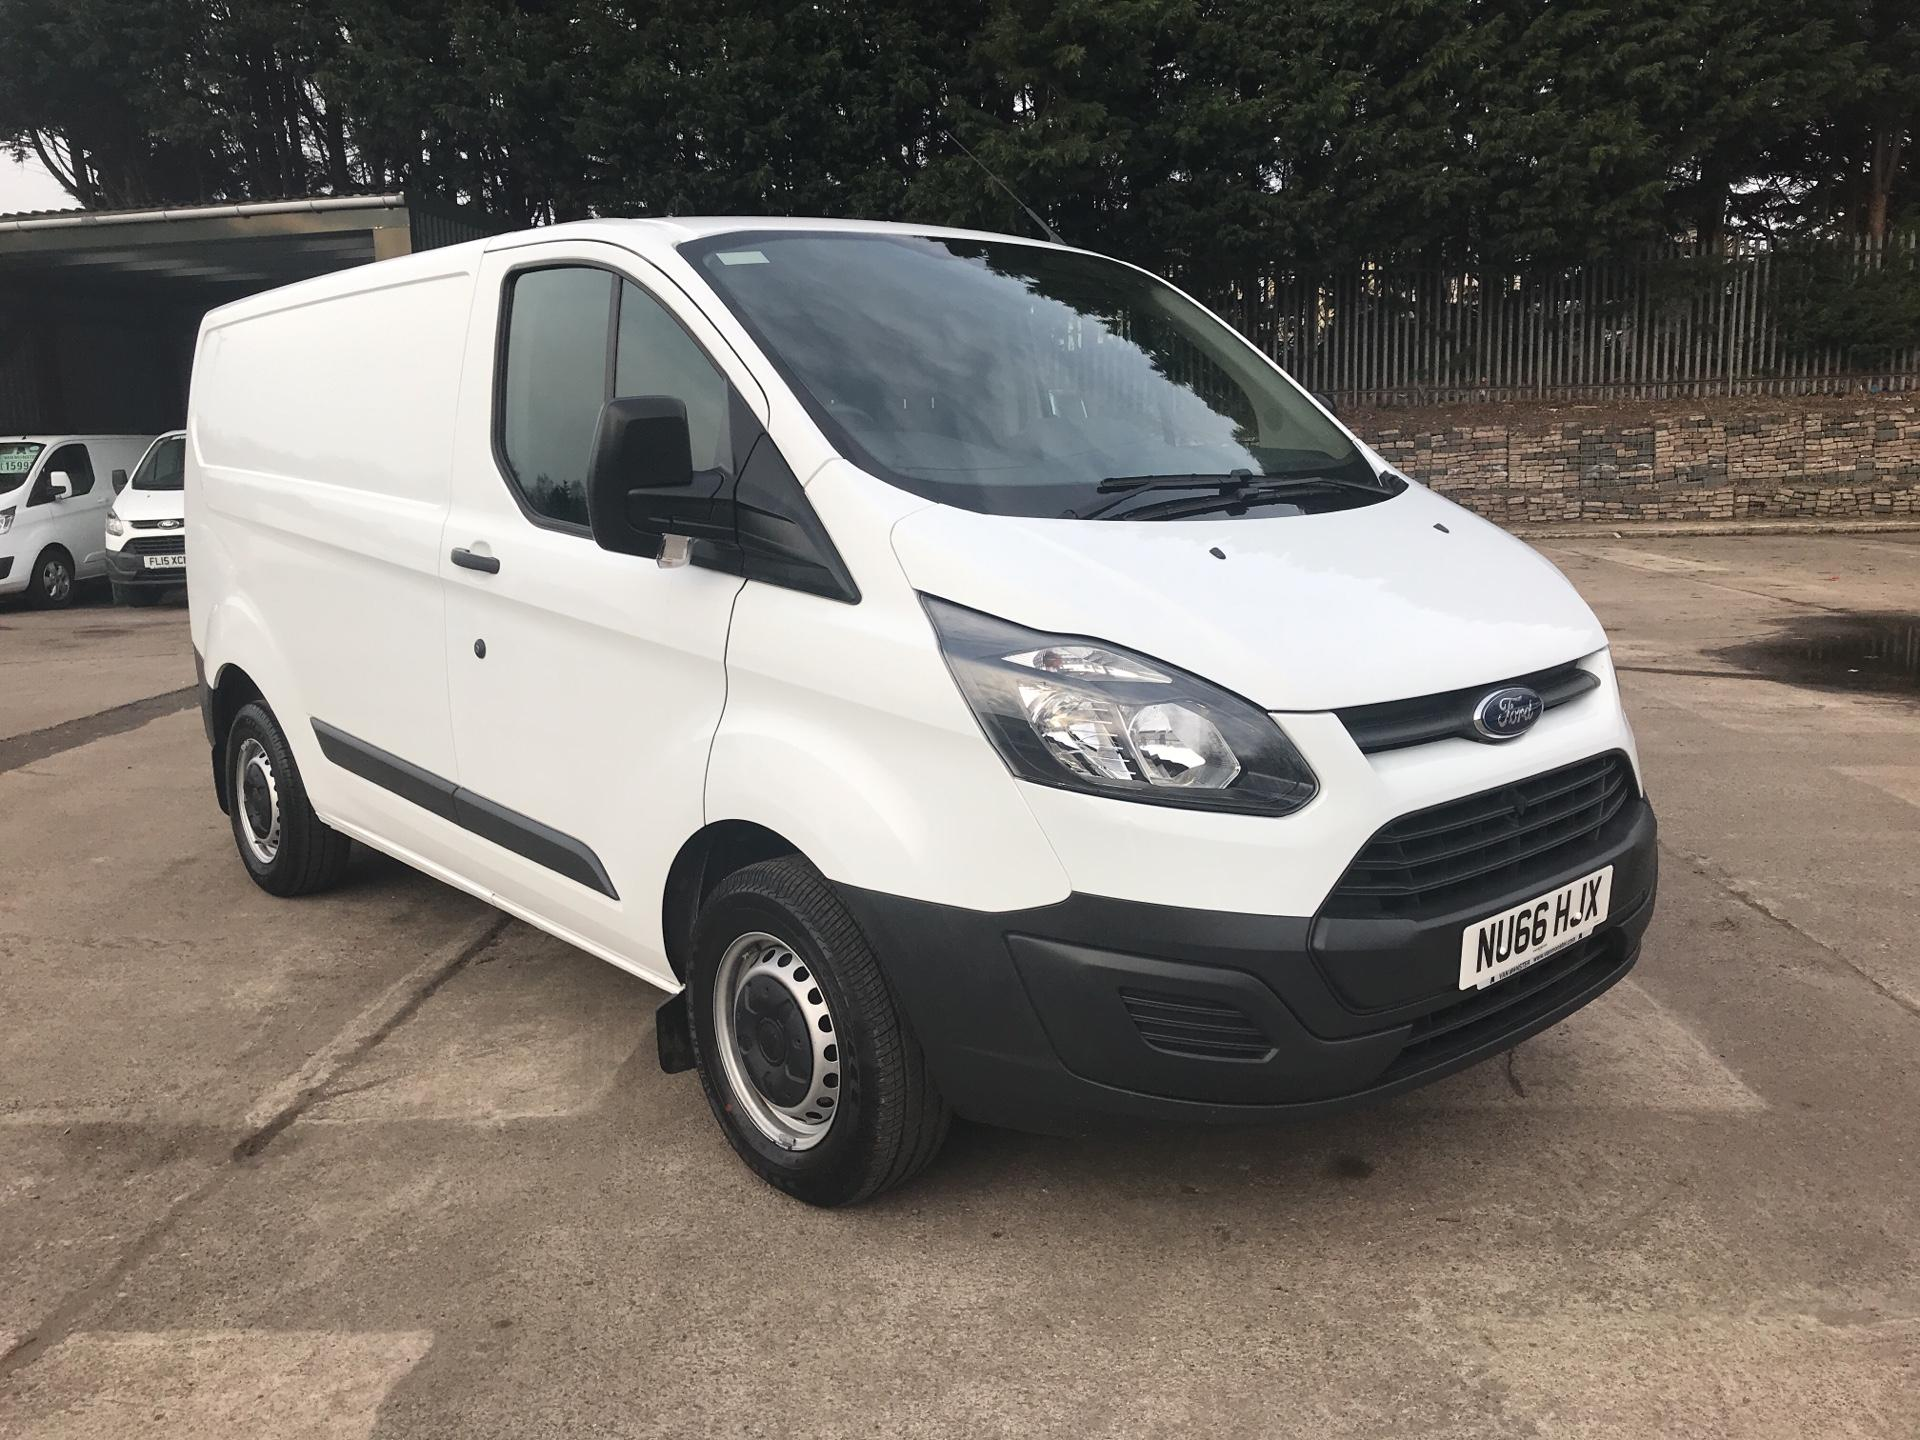 2016 Ford Transit Custom 290 L1 DIESEL FWD 2.2 TDCI 100PS LOW ROOF VAN EURO 5 (NU66HJX)